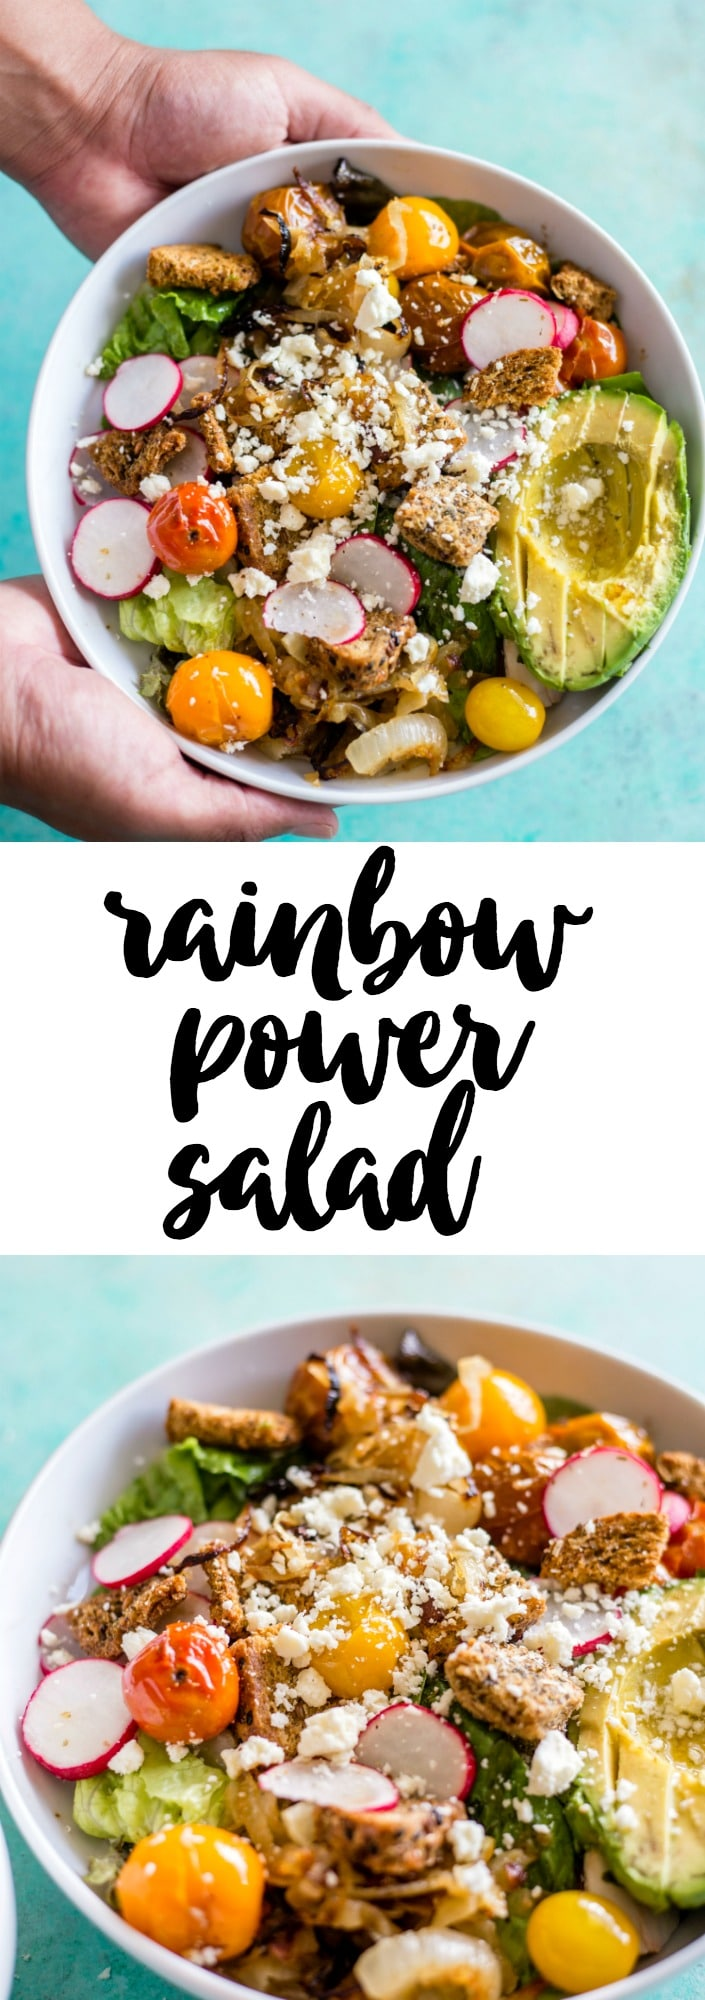 Rainbow Power Salad | Mixed greens topped with veggies, croutons and cheese--tons of flavor and a tasty lunch!